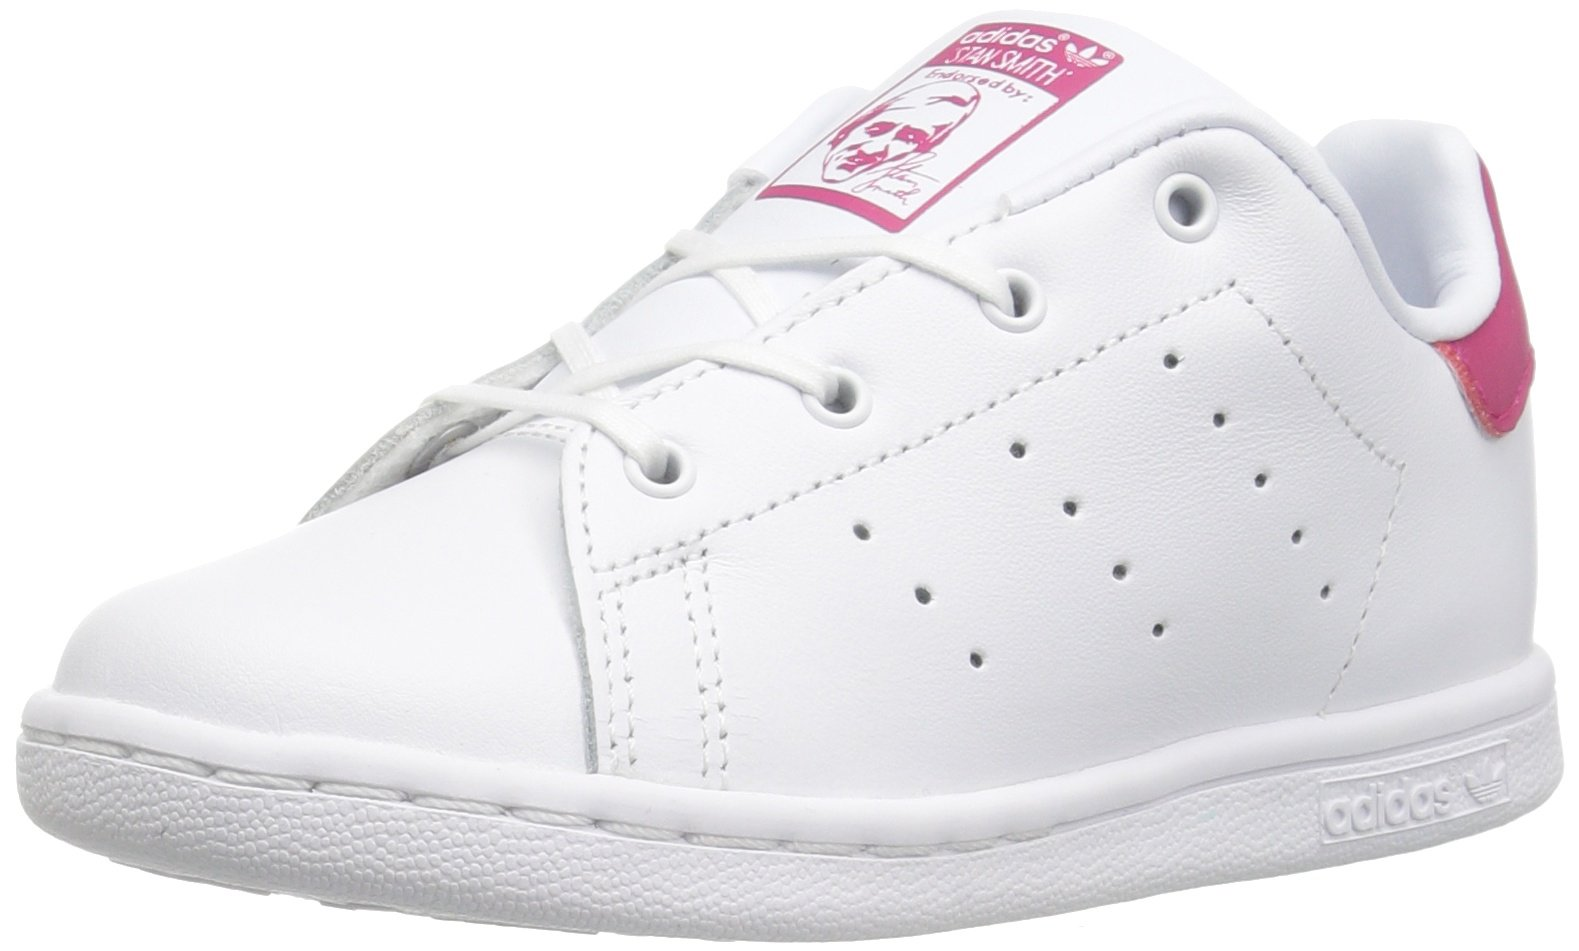 4441468059a ADIDAS ORIGINALS KIDS  STAN SMITH I SNEAKER WHITE WHITE BOLD PINK 10 ...